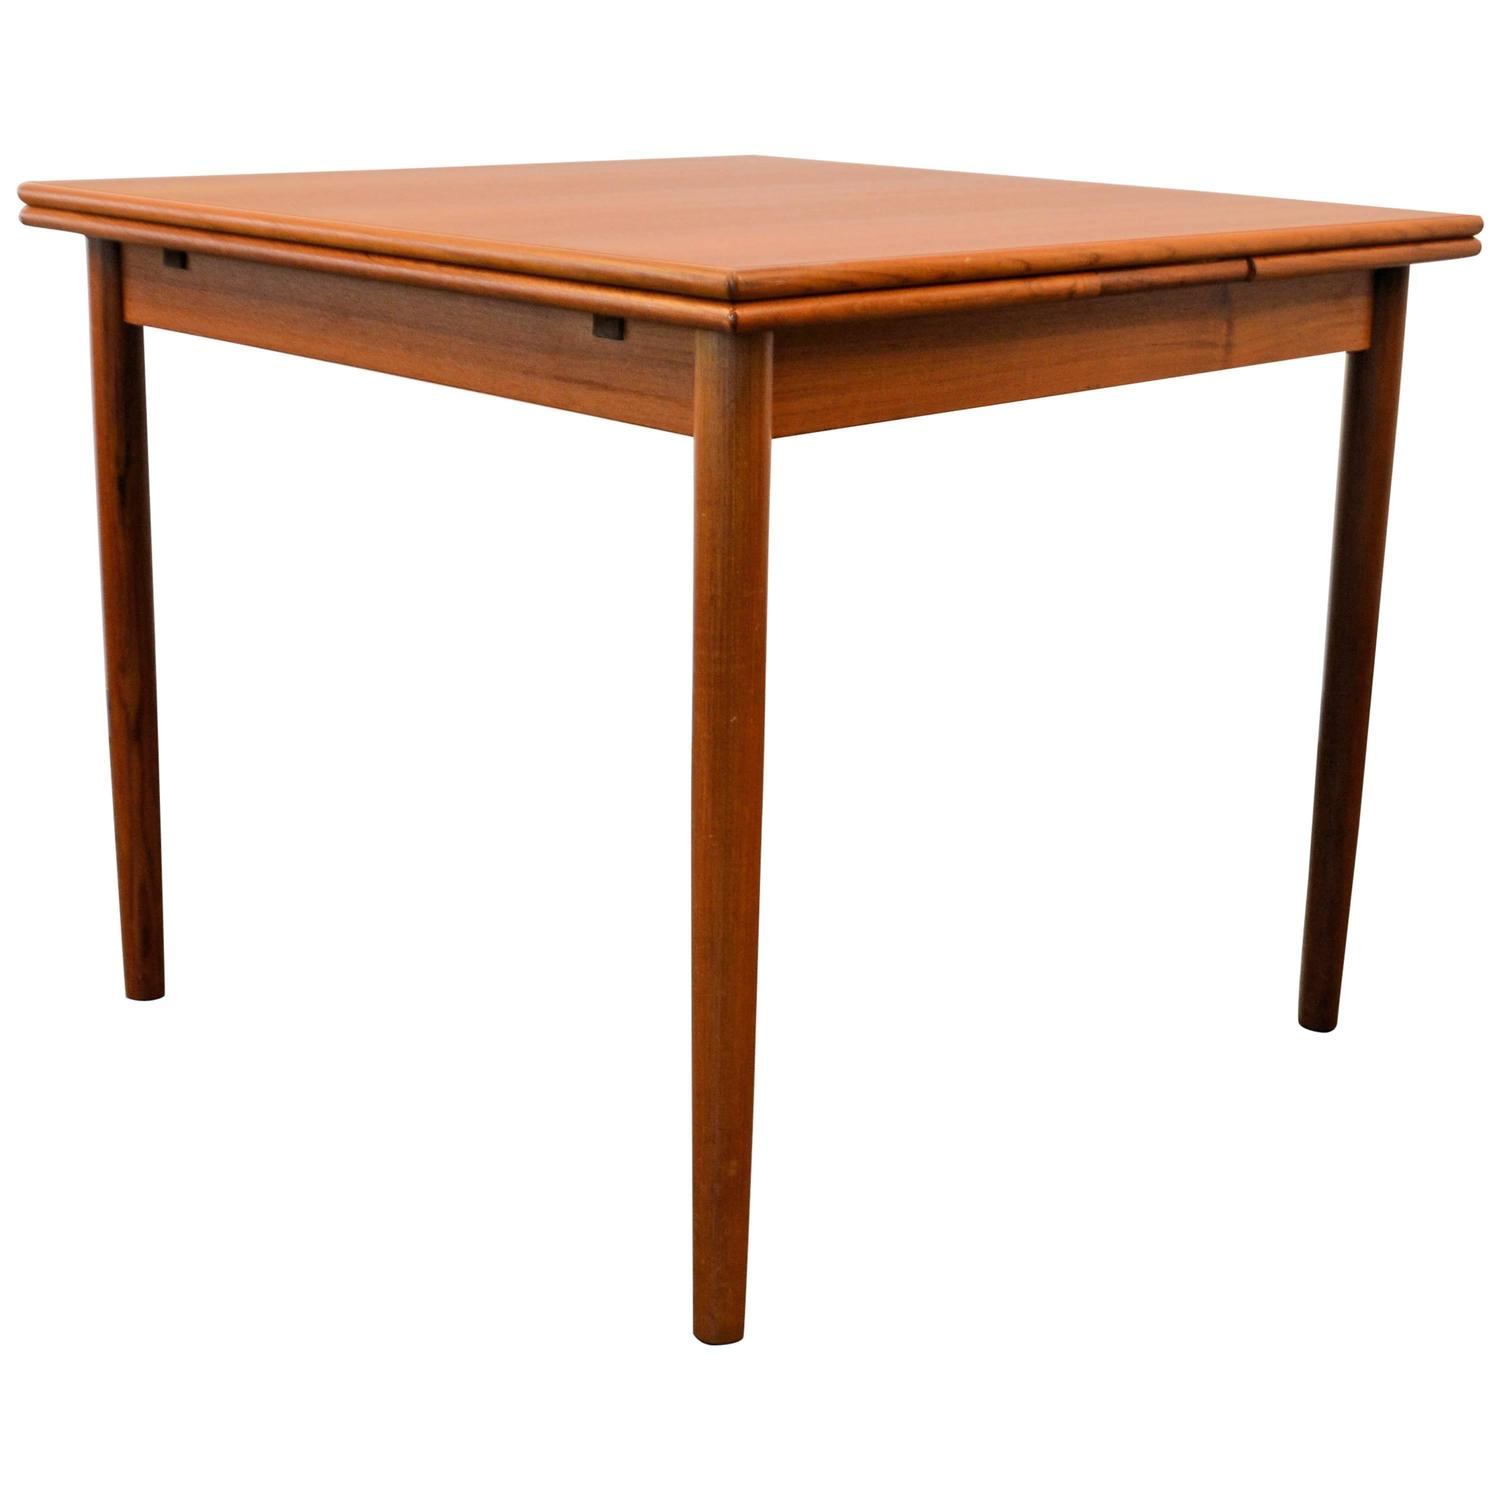 Mid Century Modern Danish Design Teak Dining Table For Sale At 1stdibs